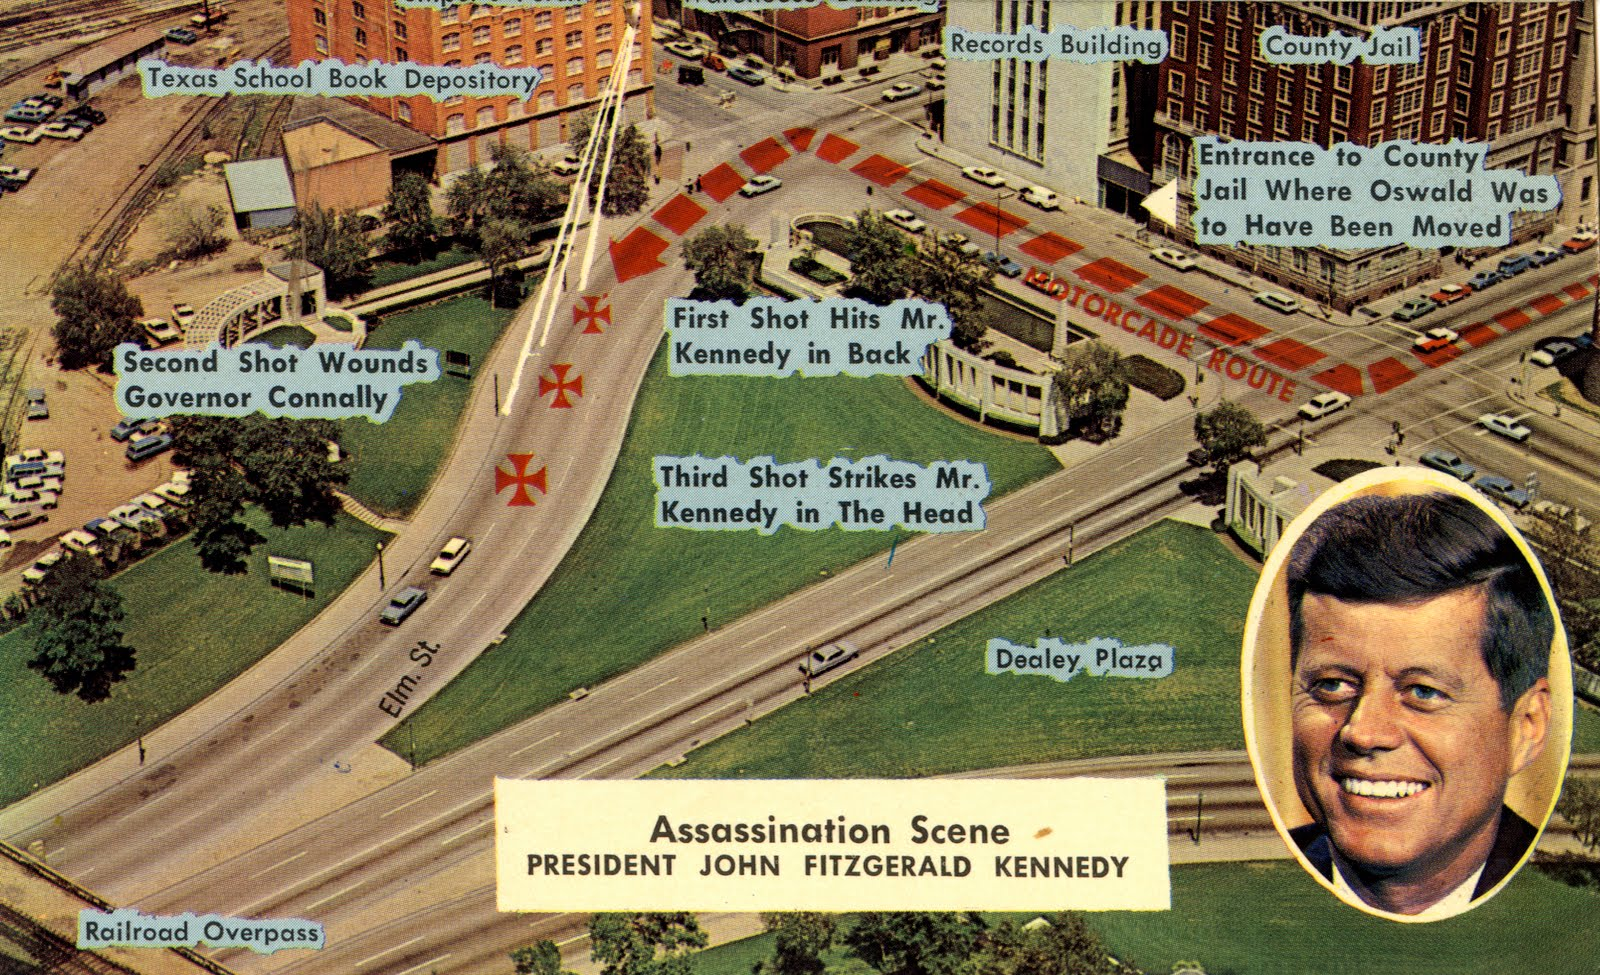 Dealey Plaza in Dallas, Texas - Ort an dem John F. Kennedy ermordet wurde(Postkarte).